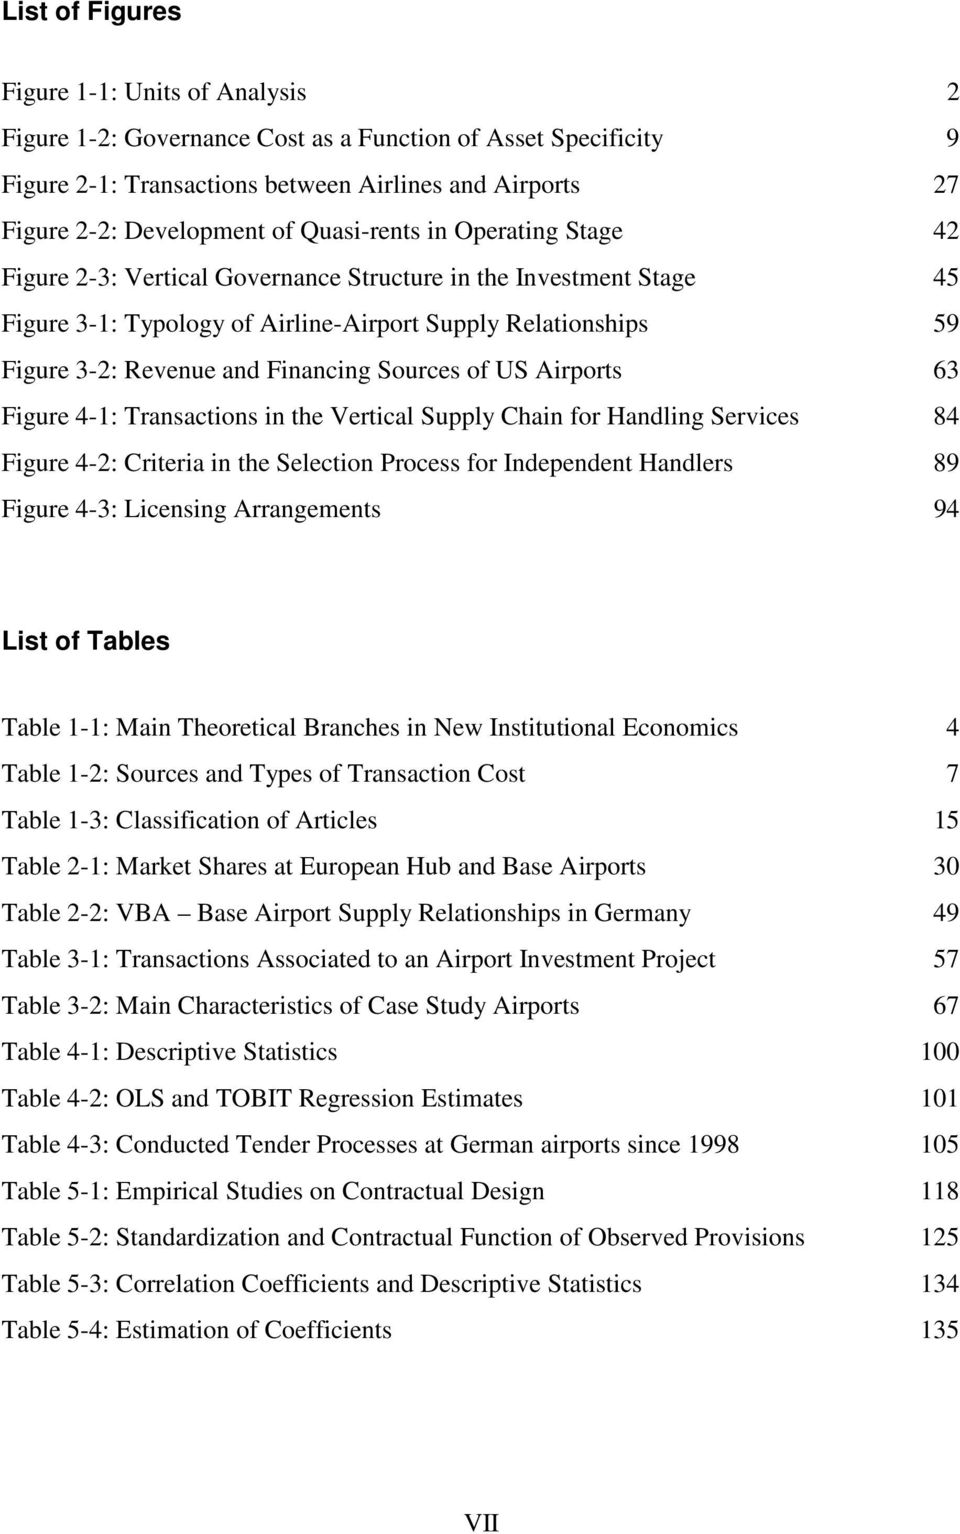 Financing Sources of US Airports 63 Figure 4-1: Transactions in the Vertical Supply Chain for Handling Services 84 Figure 4-2: Criteria in the Selection Process for Independent Handlers 89 Figure